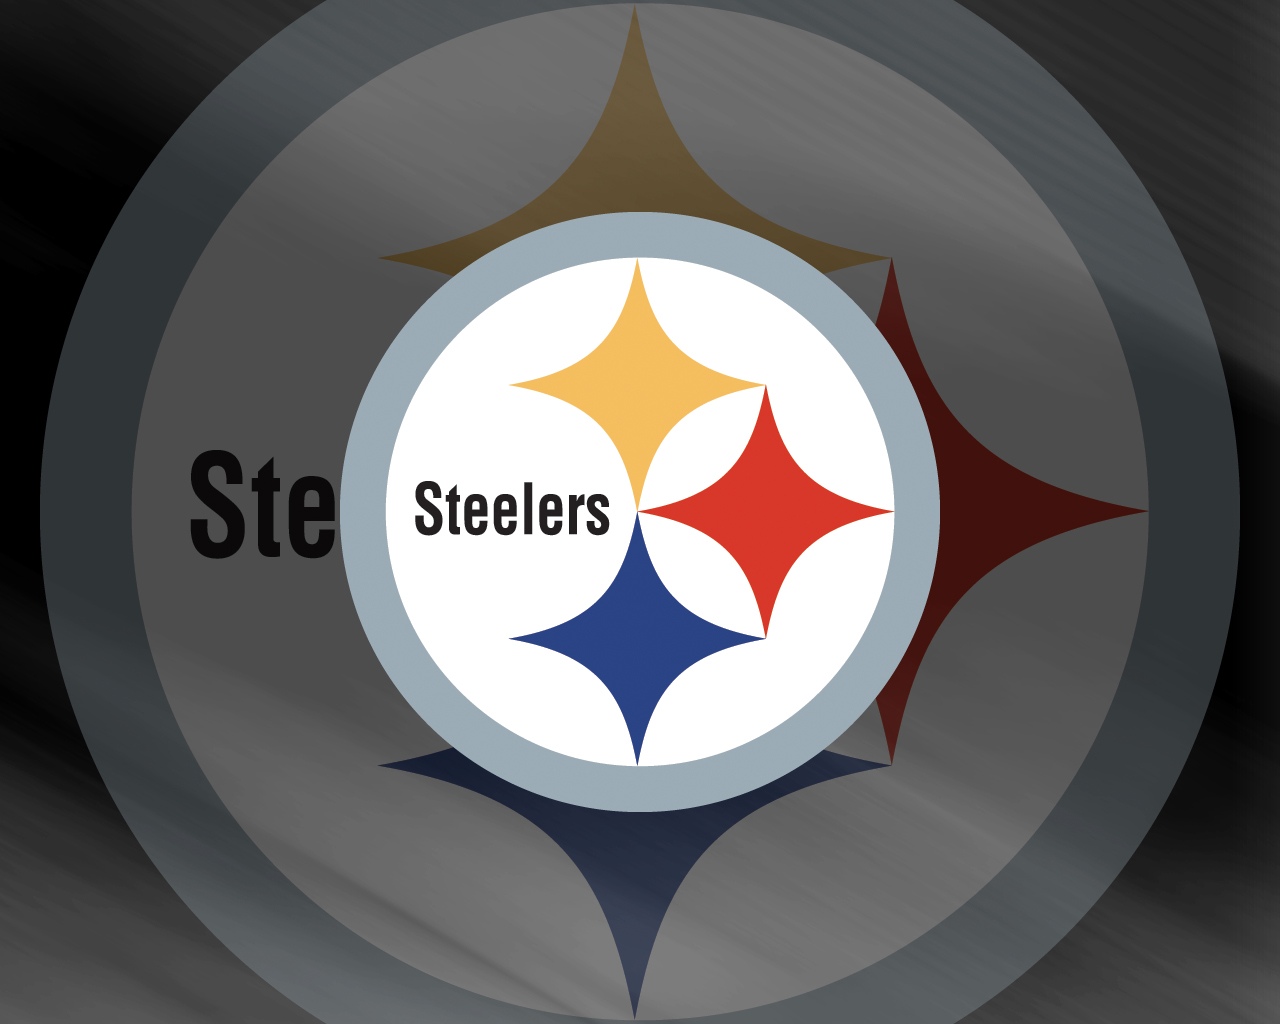 NFL pittsburgh steelers logo wallpaper Urban Art Wallpaper 1280x1024